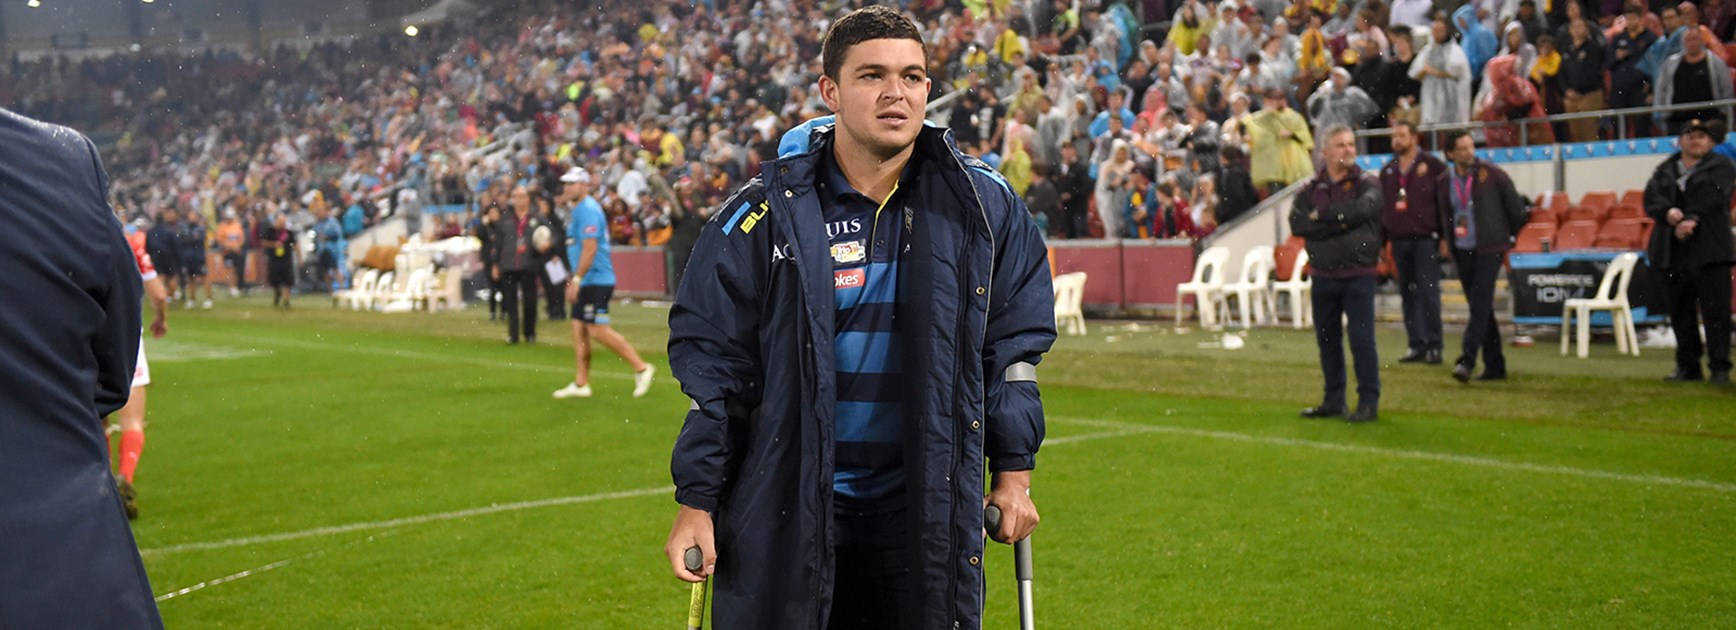 Titans halfback Ashley Taylor was injured in his side's elimination final loss to the Broncos.